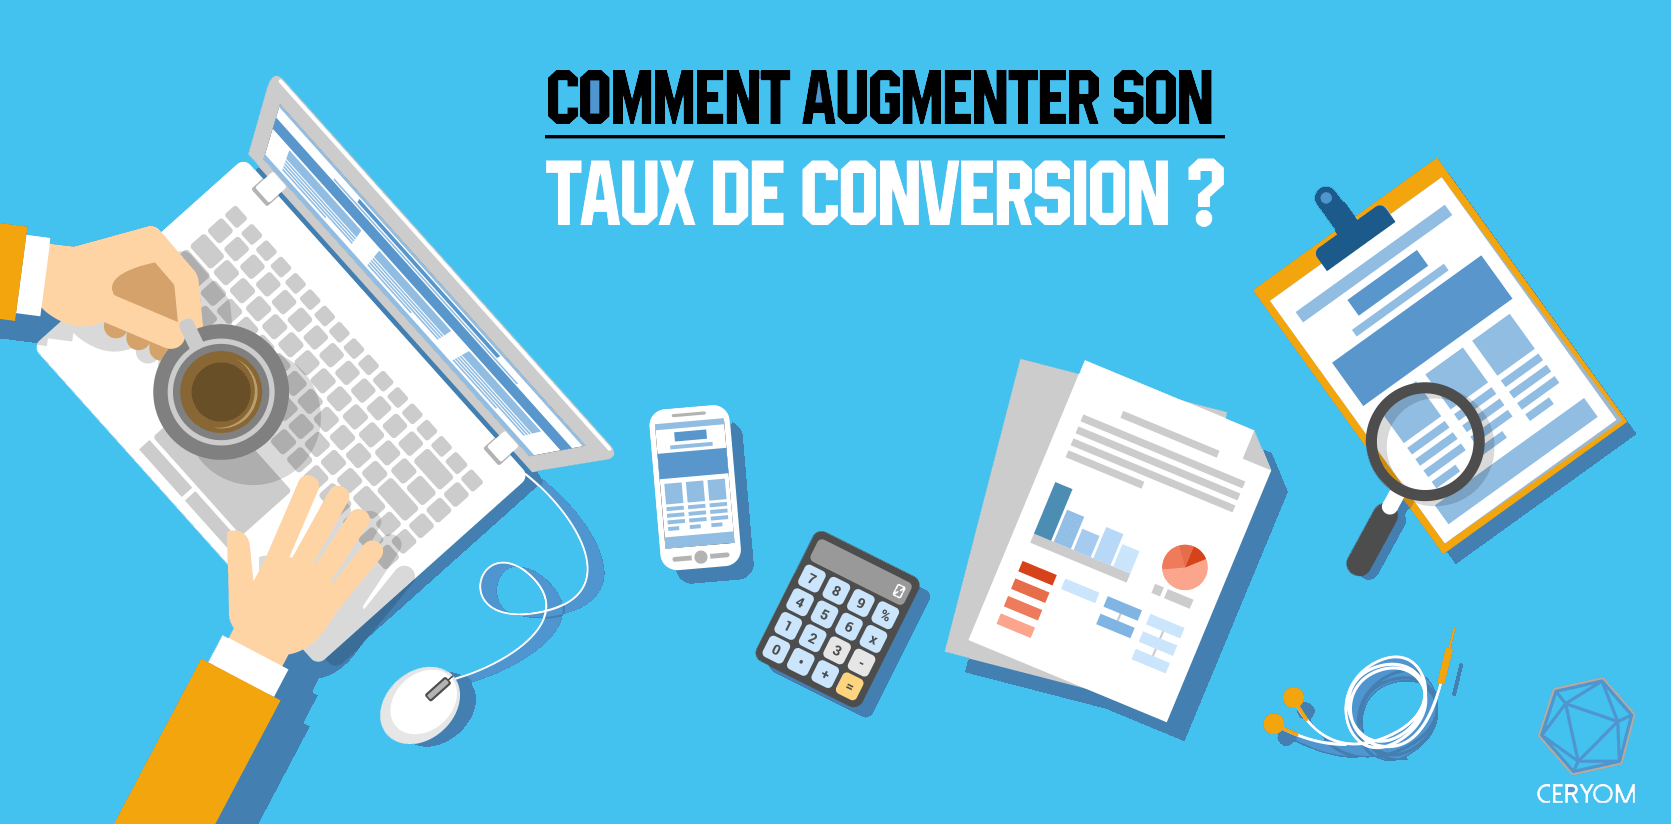 comment augmenter son taux de conversion